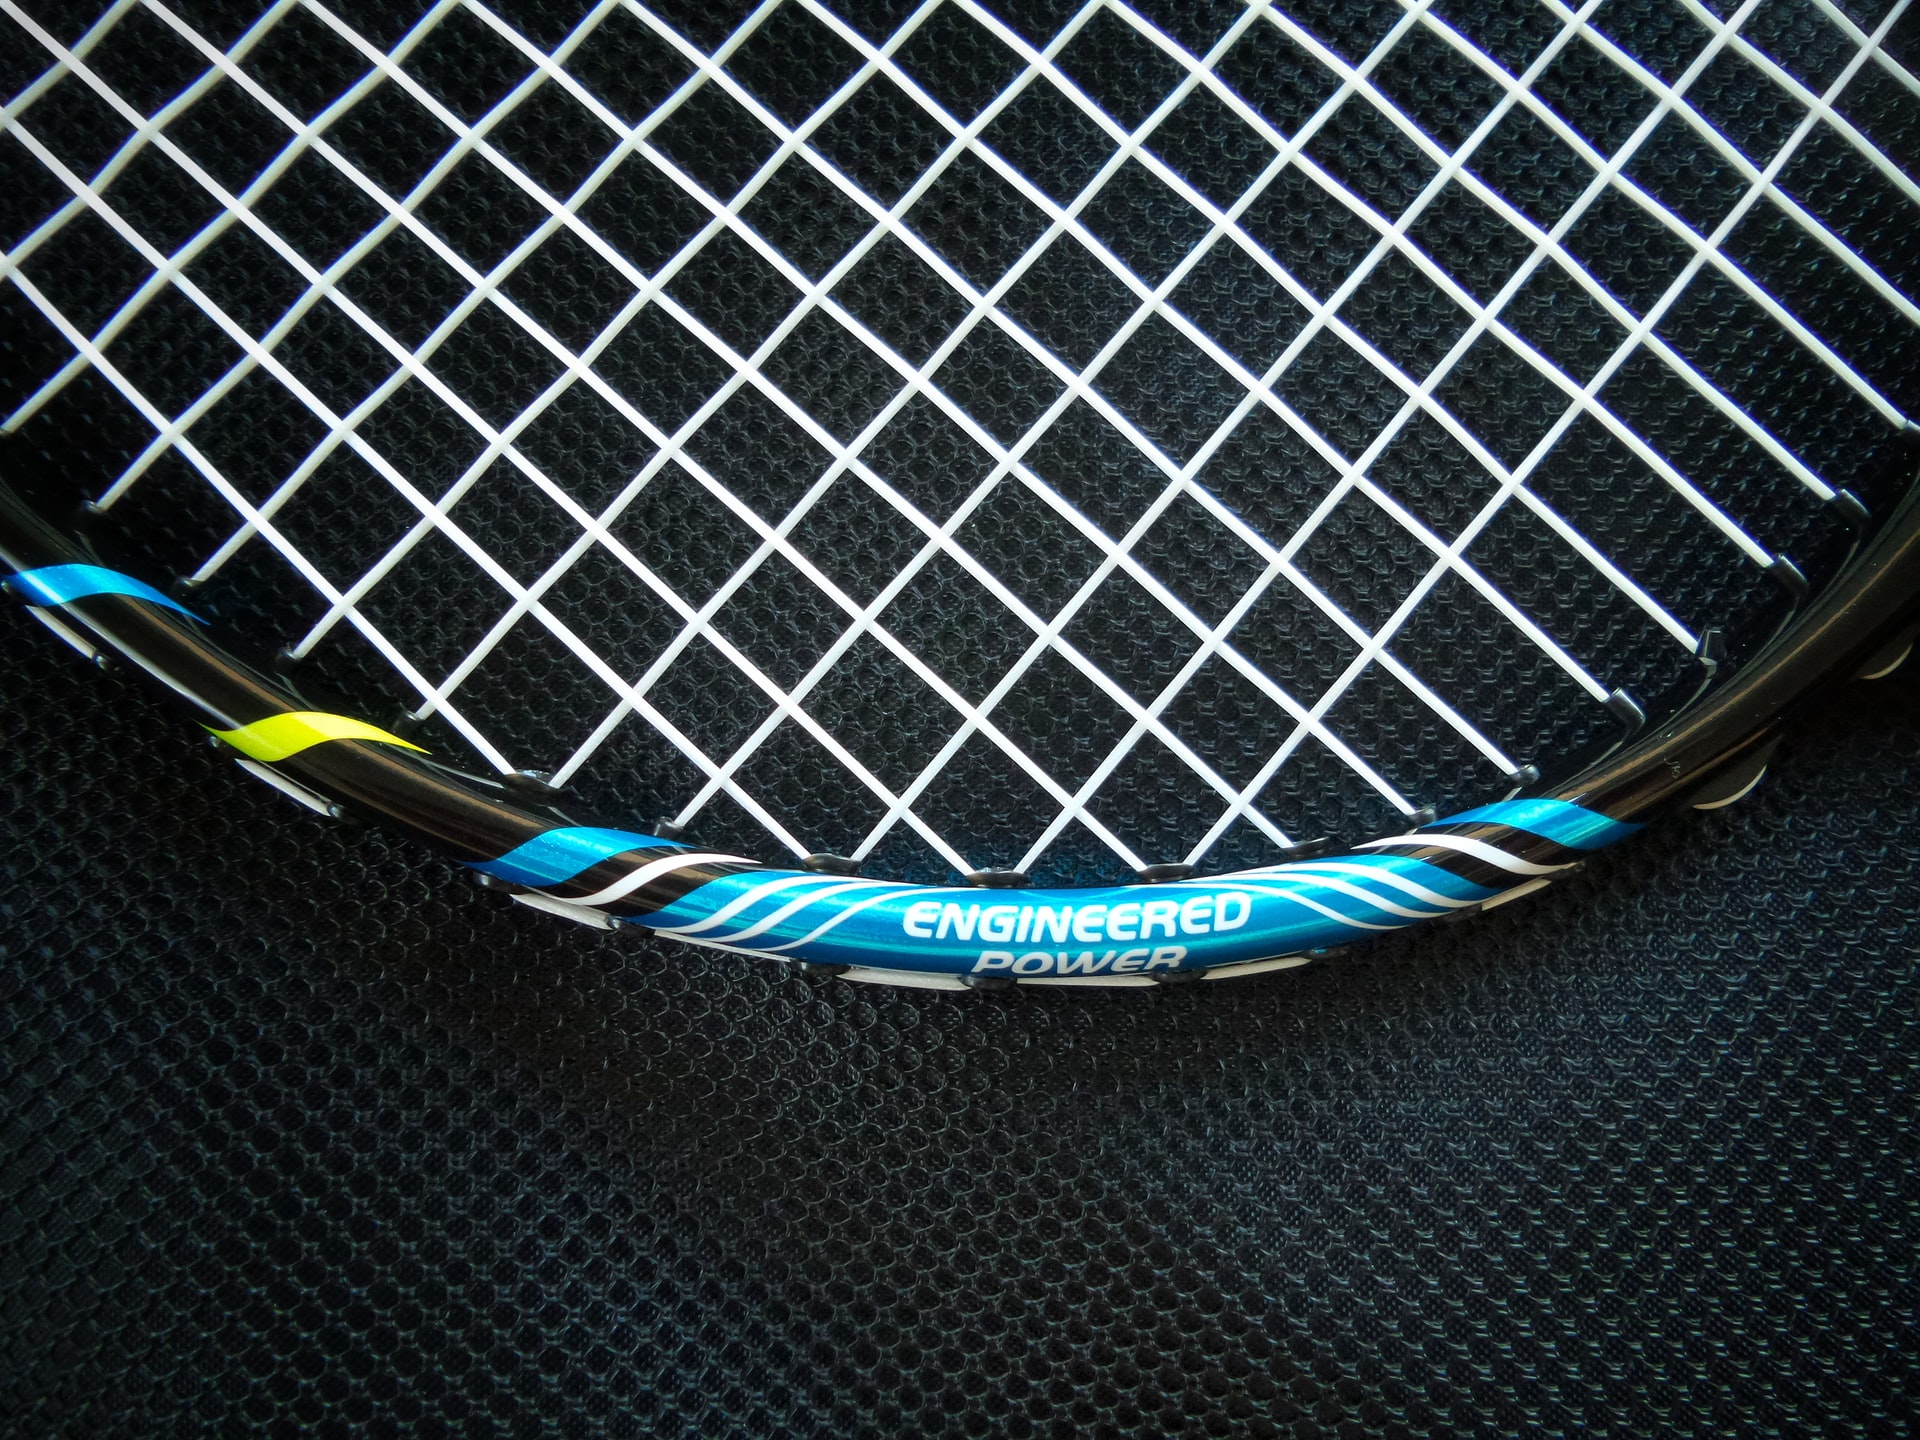 Our own professional data on how long it takes to string a racket